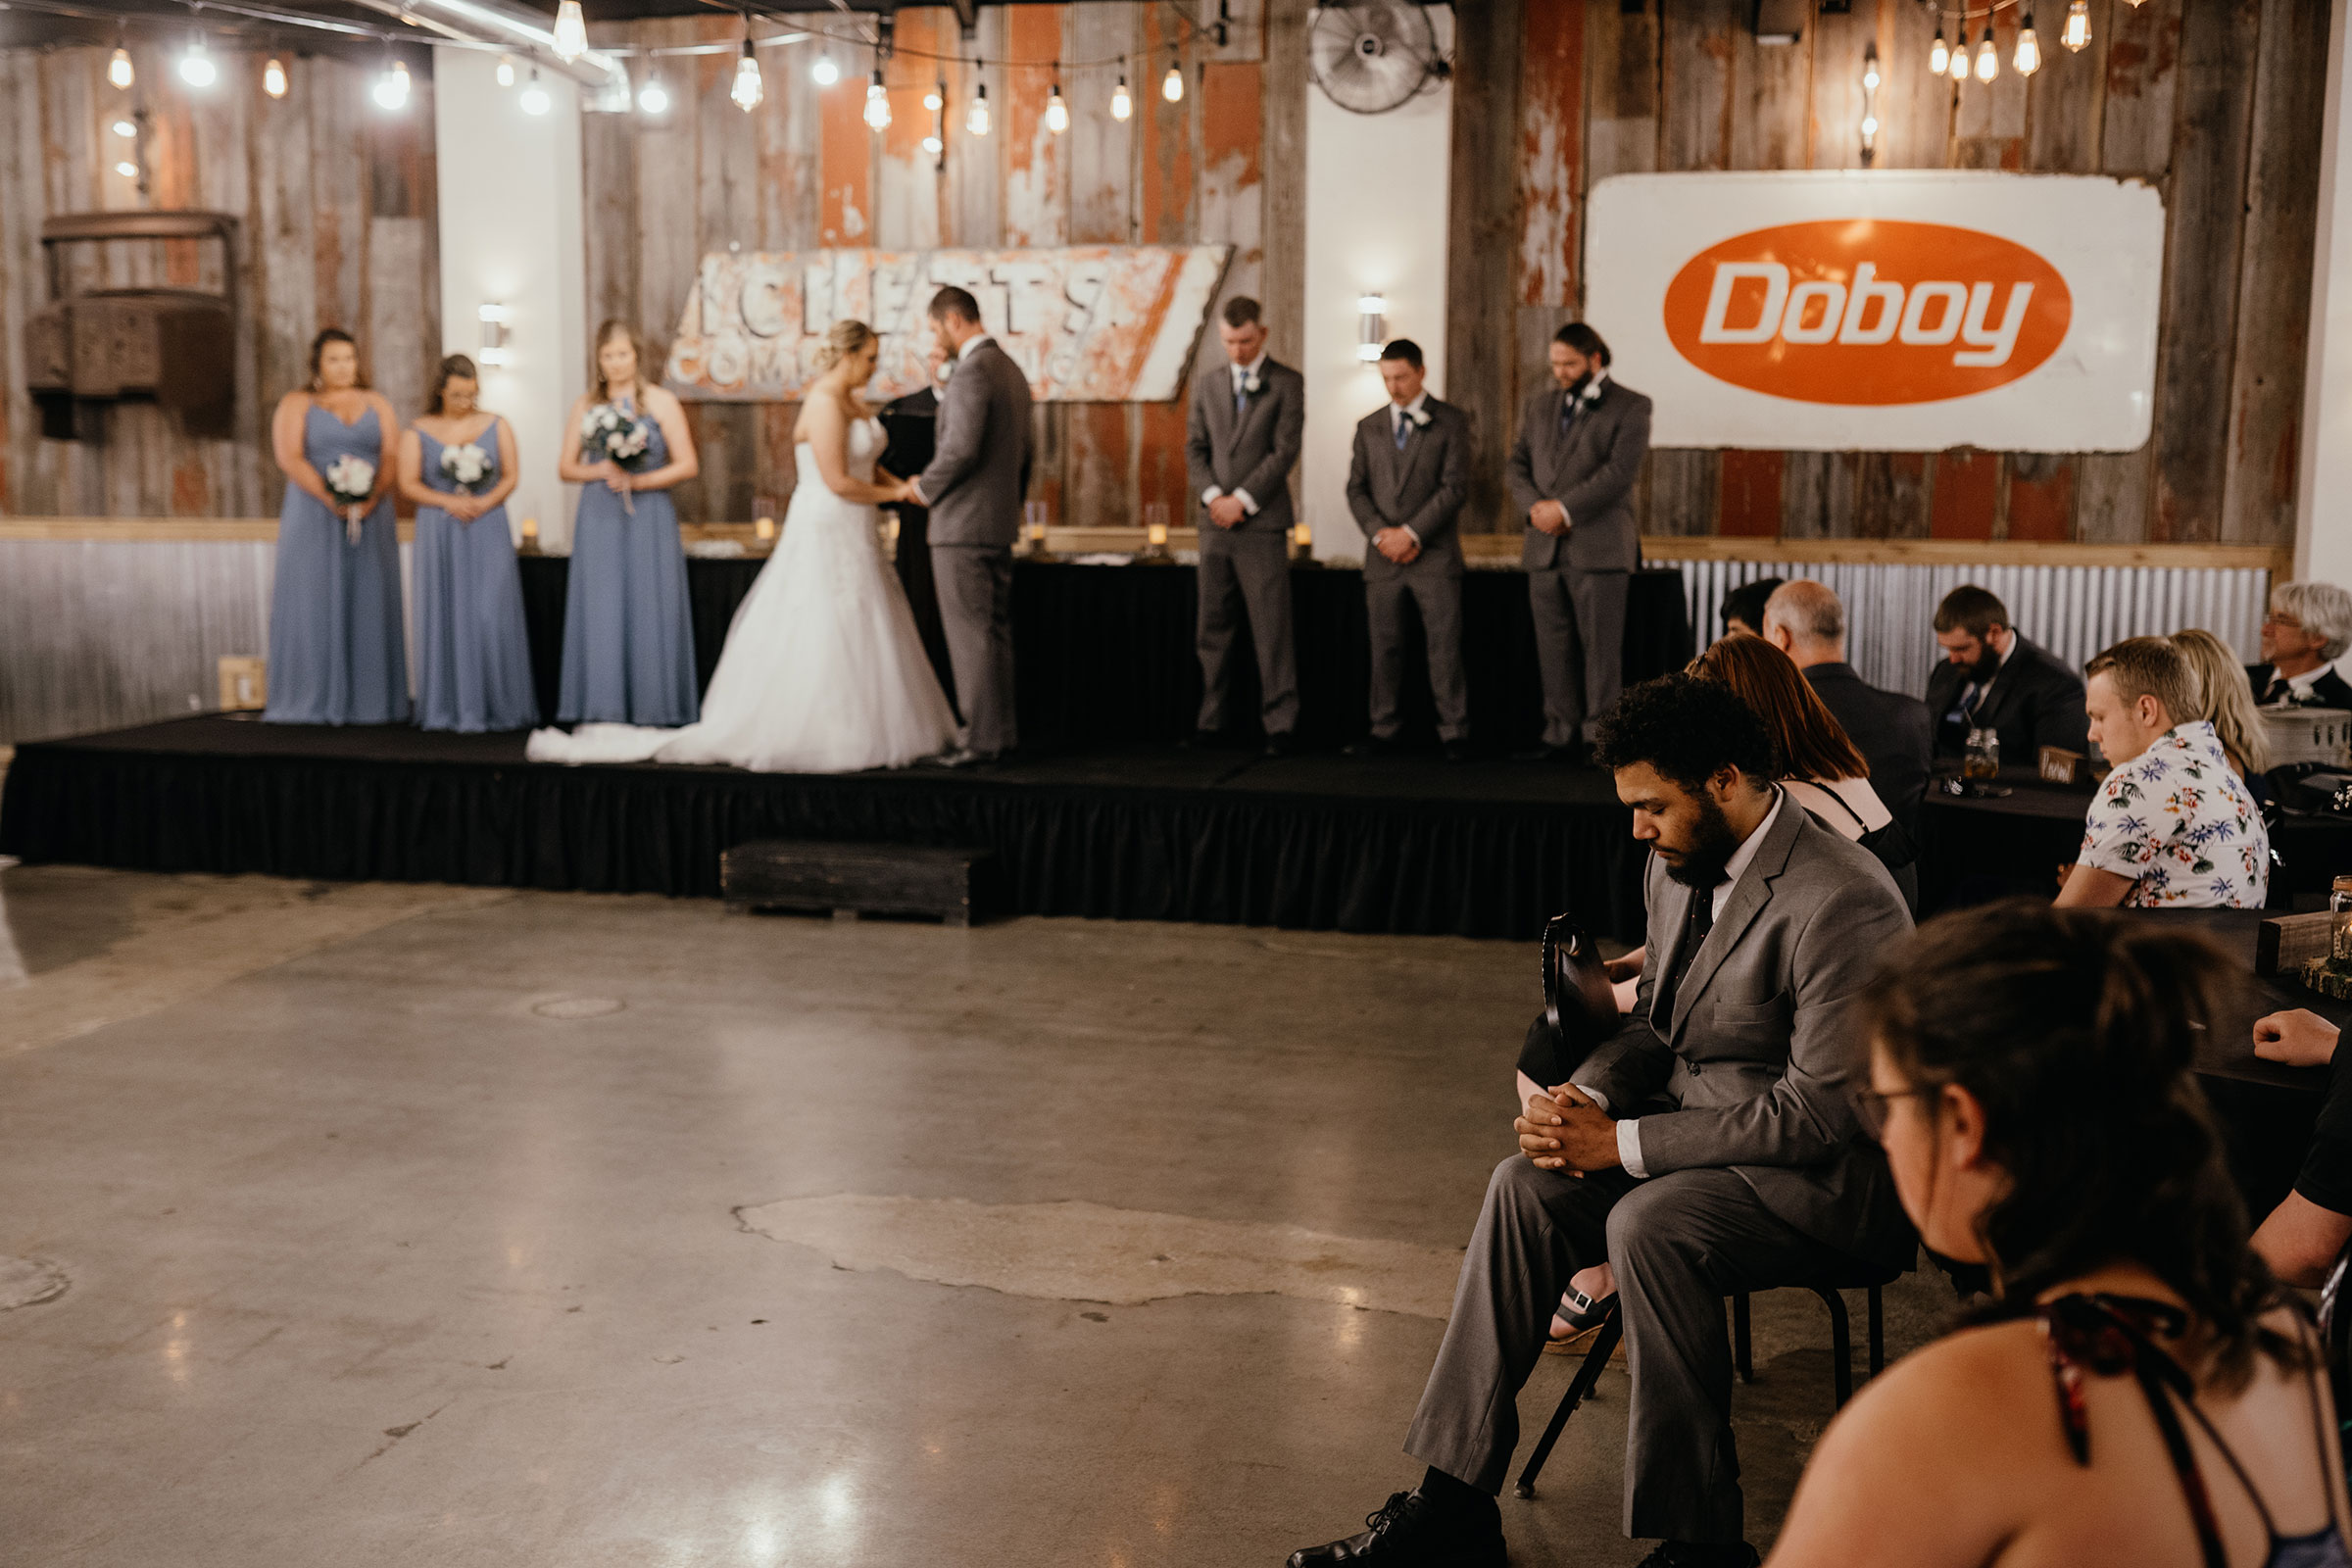 guests-praying-during-ceremony-decades-event-center-building-desmoines-iowa-raelyn-ramey-photography..jpg